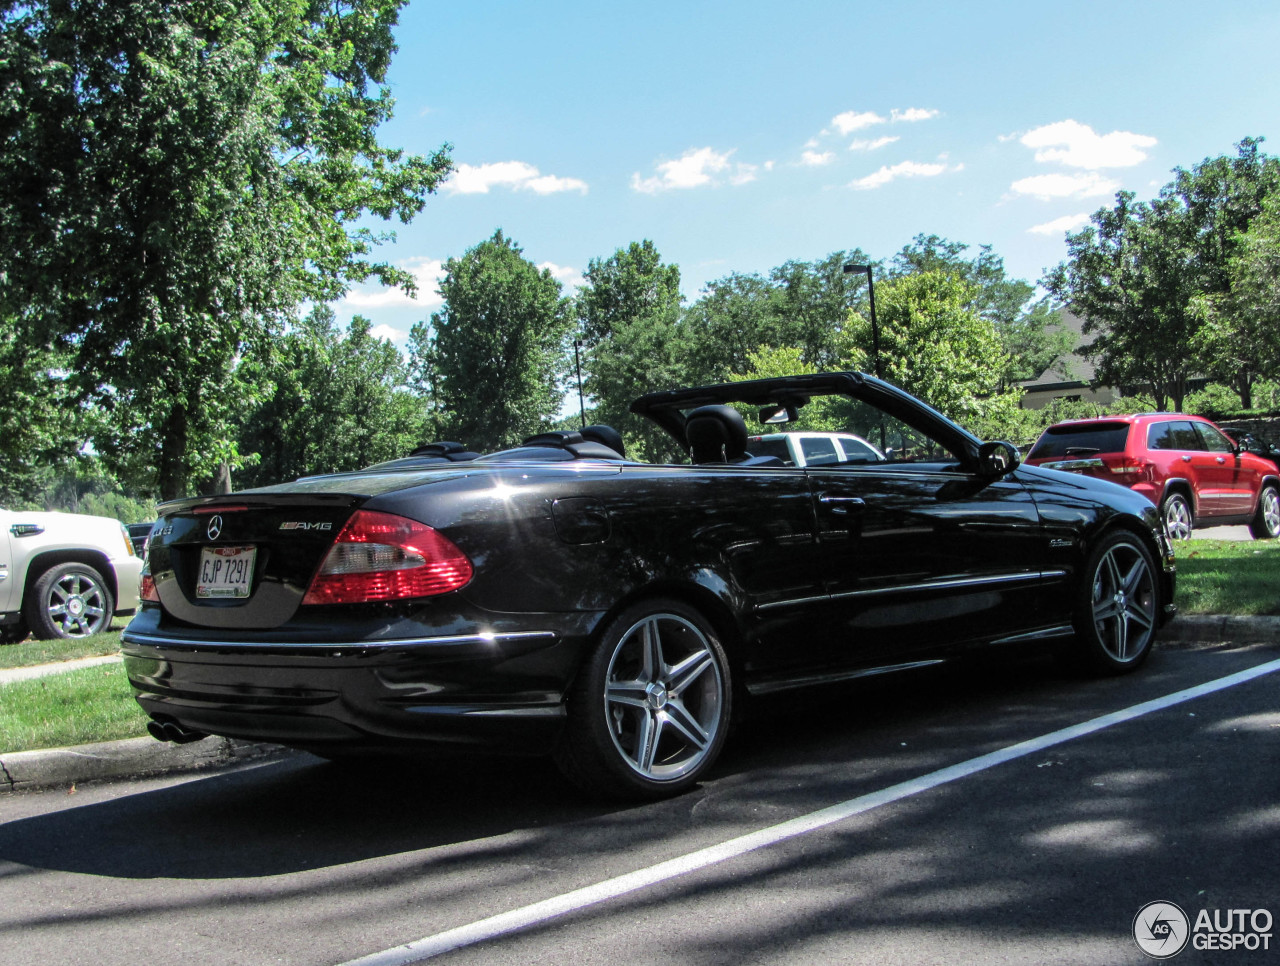 Mercedes benz clk 63 amg cabriolet 20 august 2015 for Mercedes benz clk 63